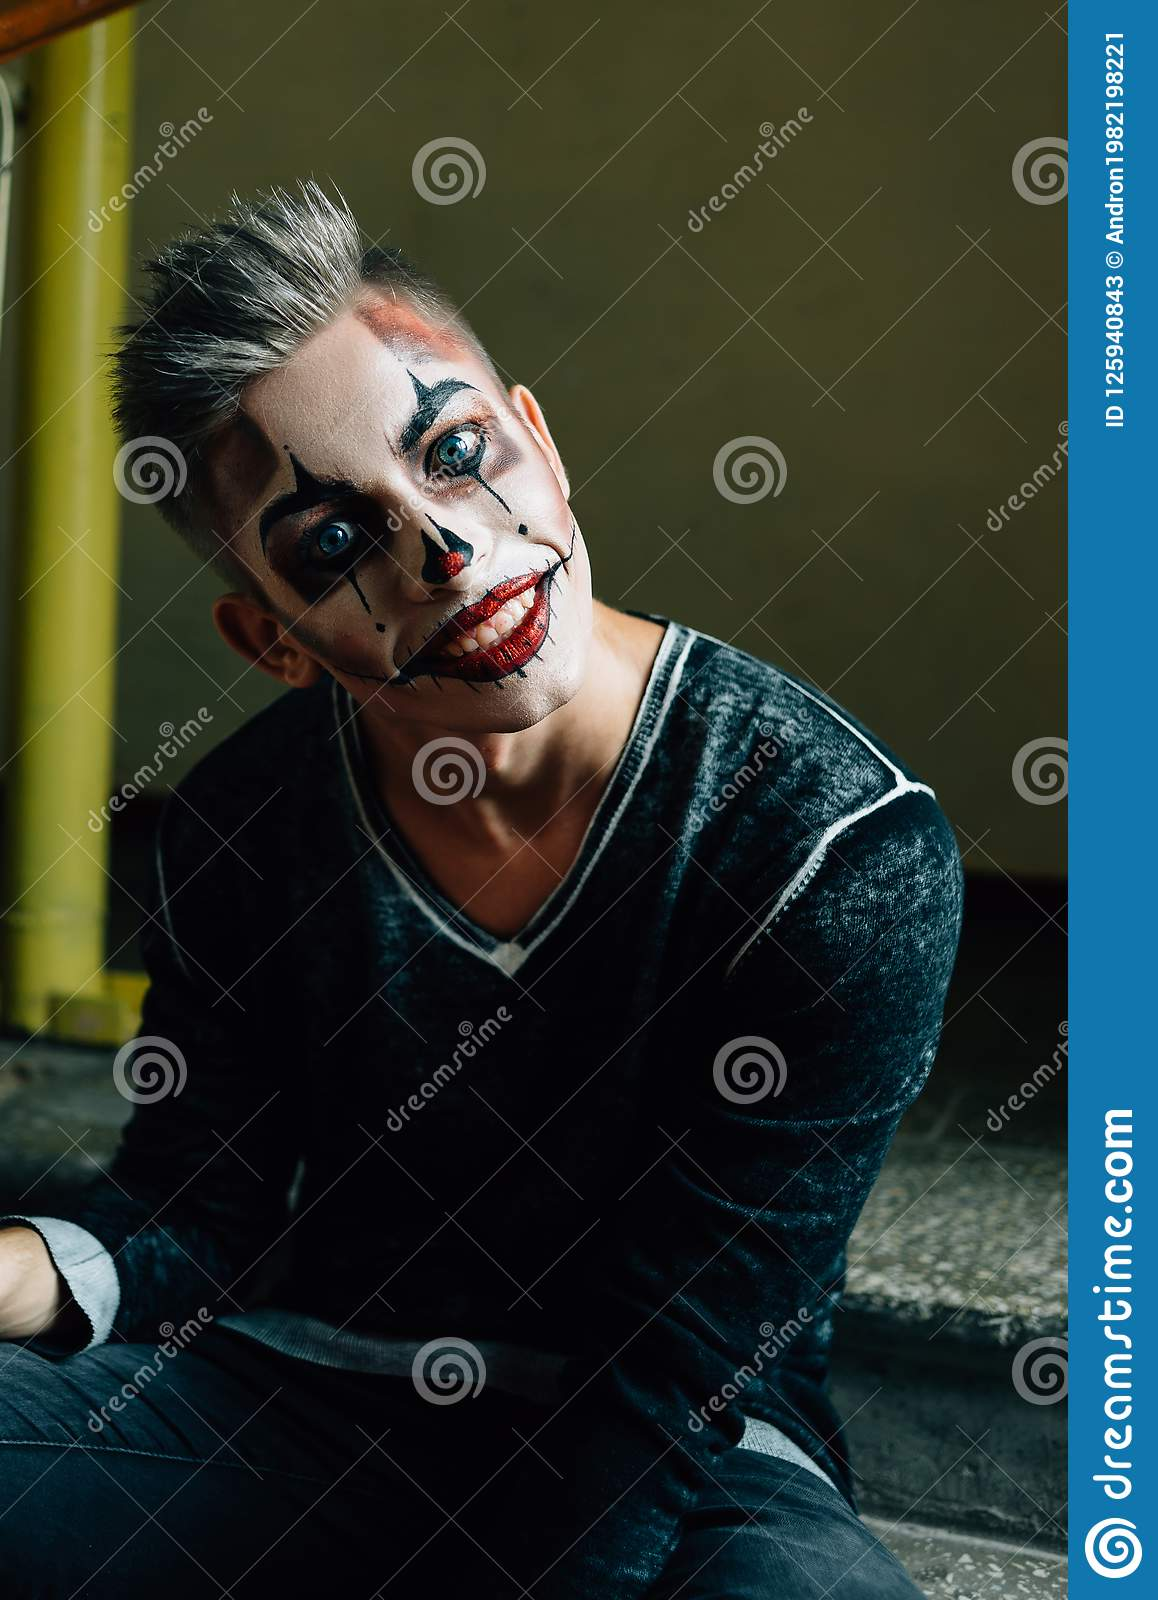 download man with skull makeup in hood looks at camera halloween face art stock image